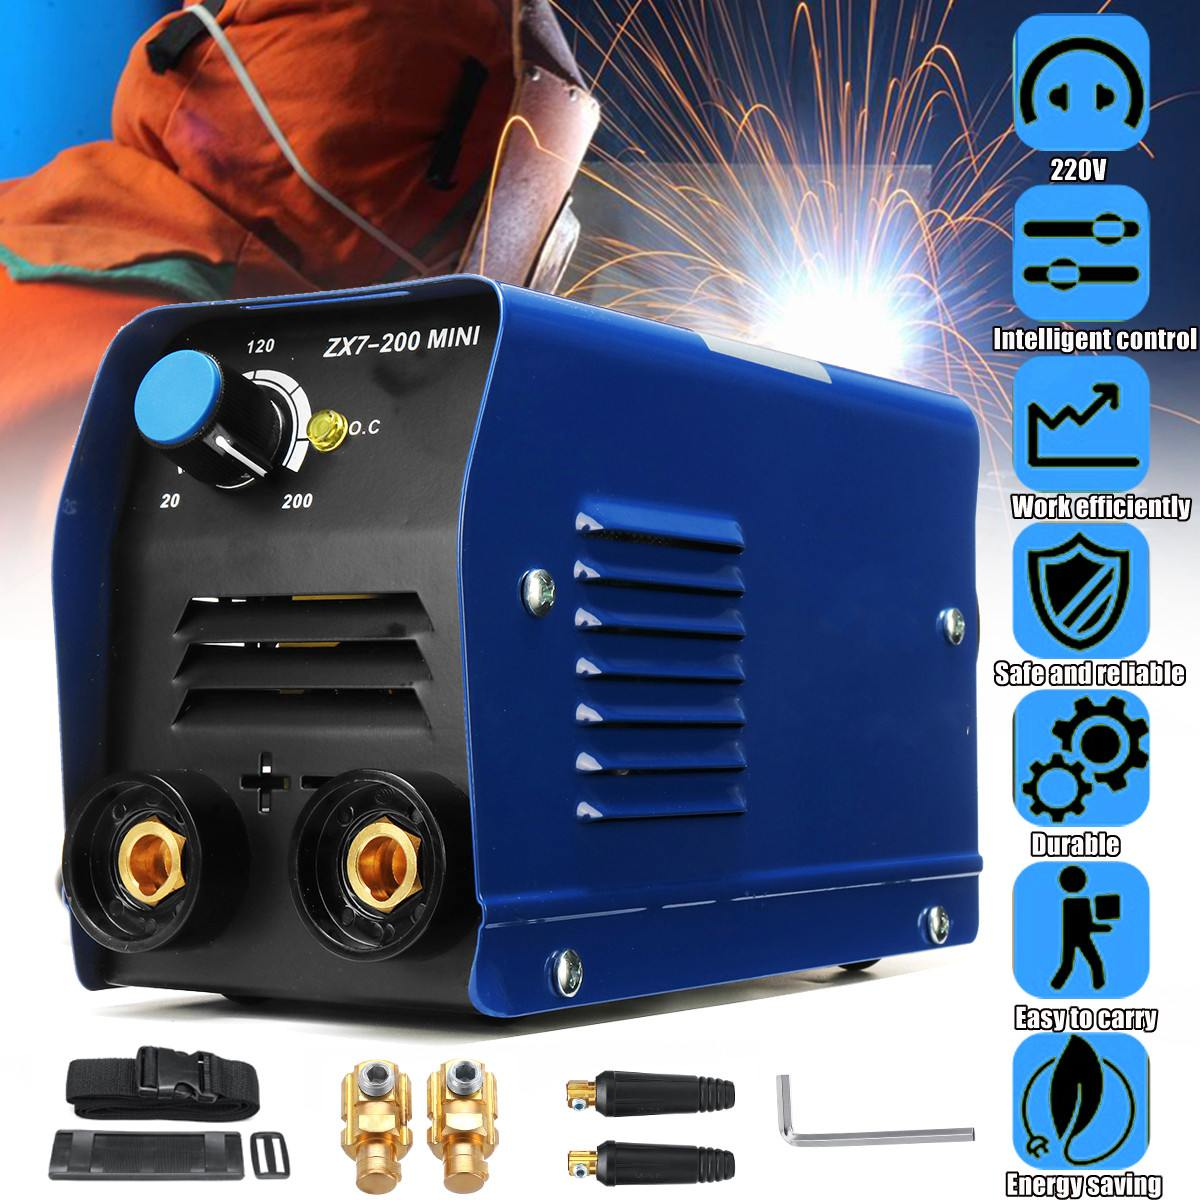 220V 200A MMA ARC Welding Machine IGBT Inverter Stick Welder W// MASK 14PCS